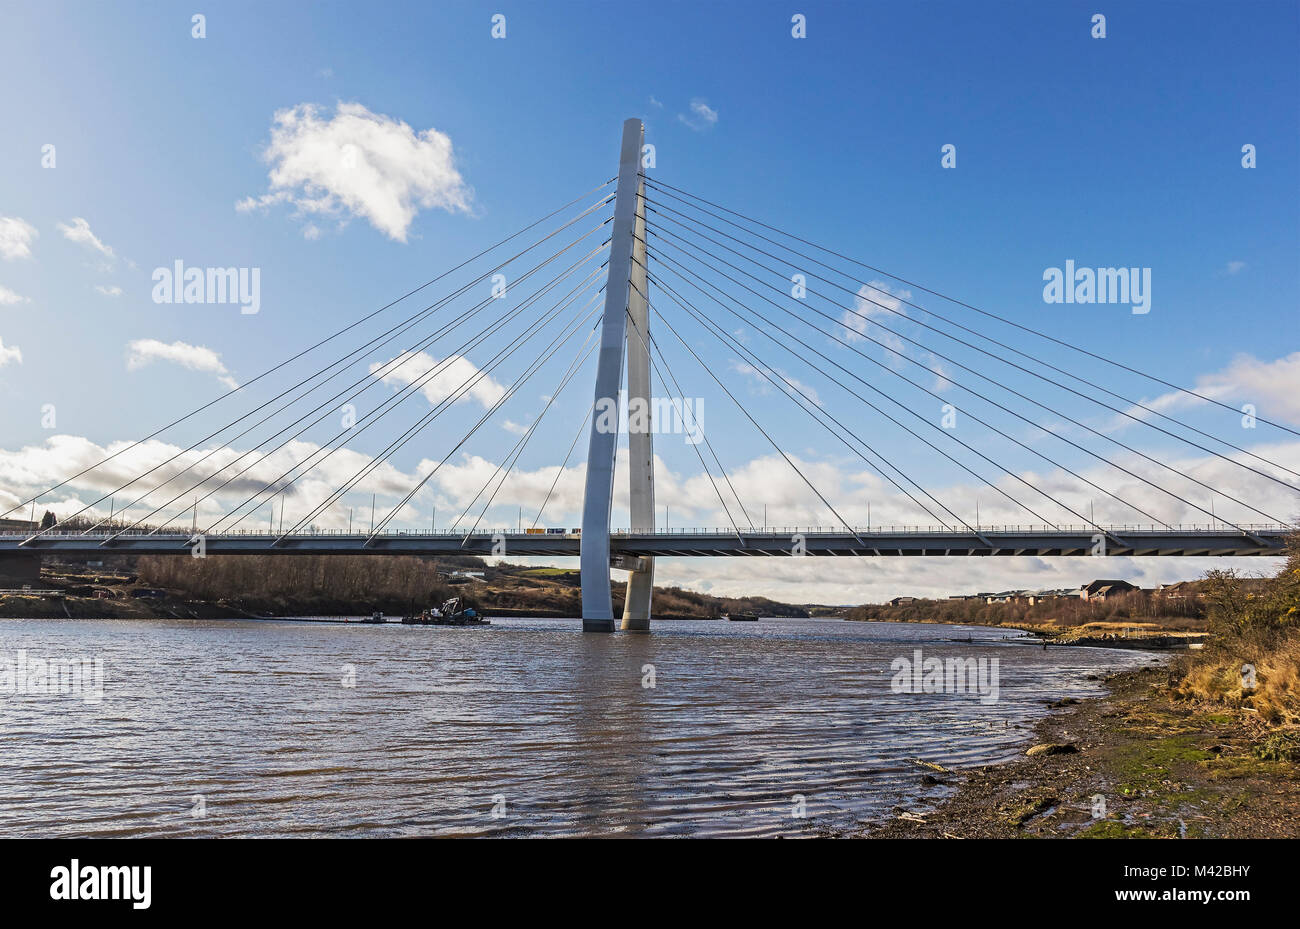 The Northern Spire bridge over the river Wear, Sunderland, UK, has been built to last 120 years at a cost of around - Stock Image